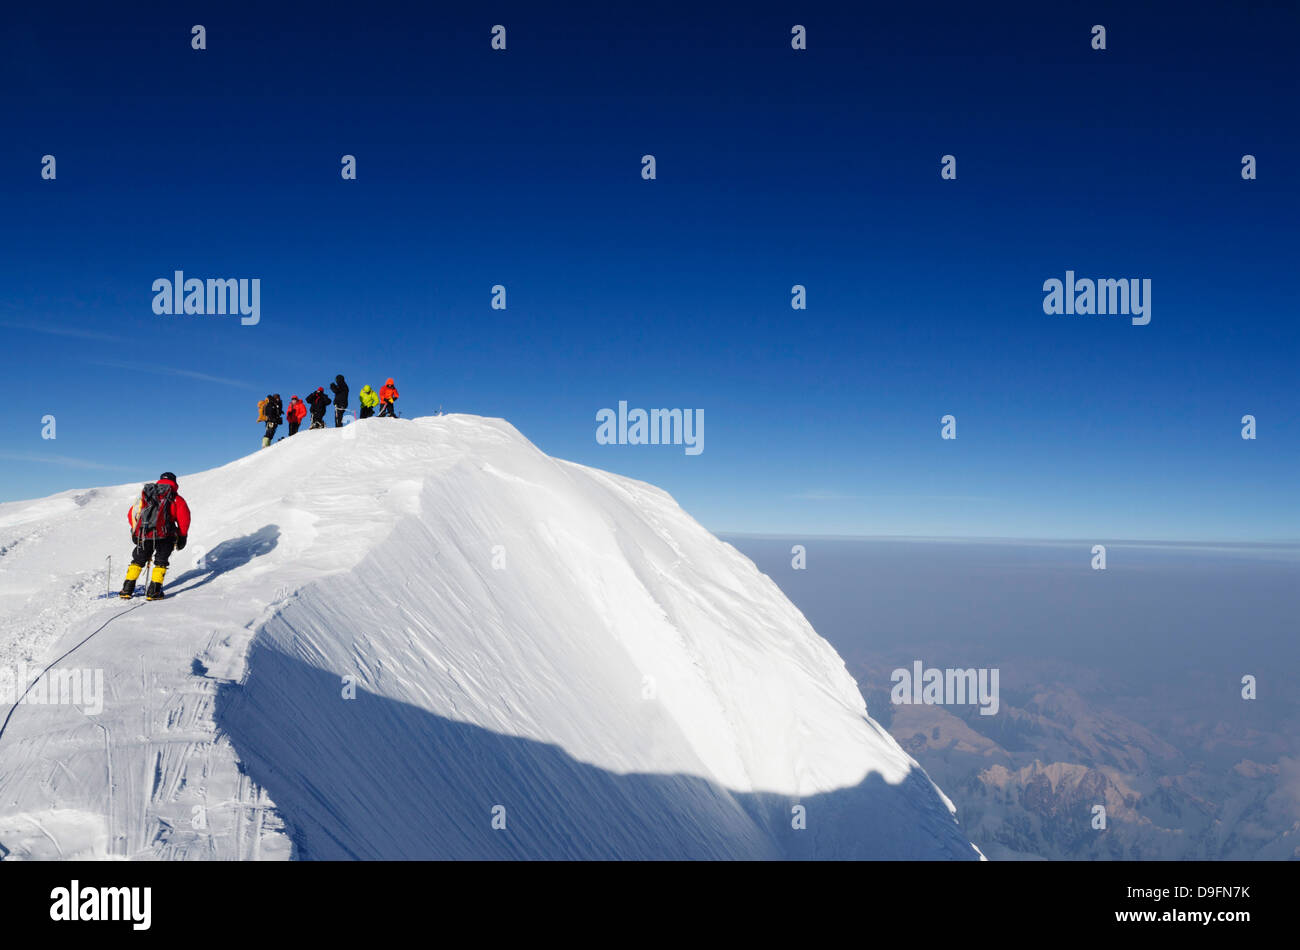 Summit ridge, climbing expedition on Mount McKinley, 6194m, Denali National Park, Alaska, USA - Stock Image